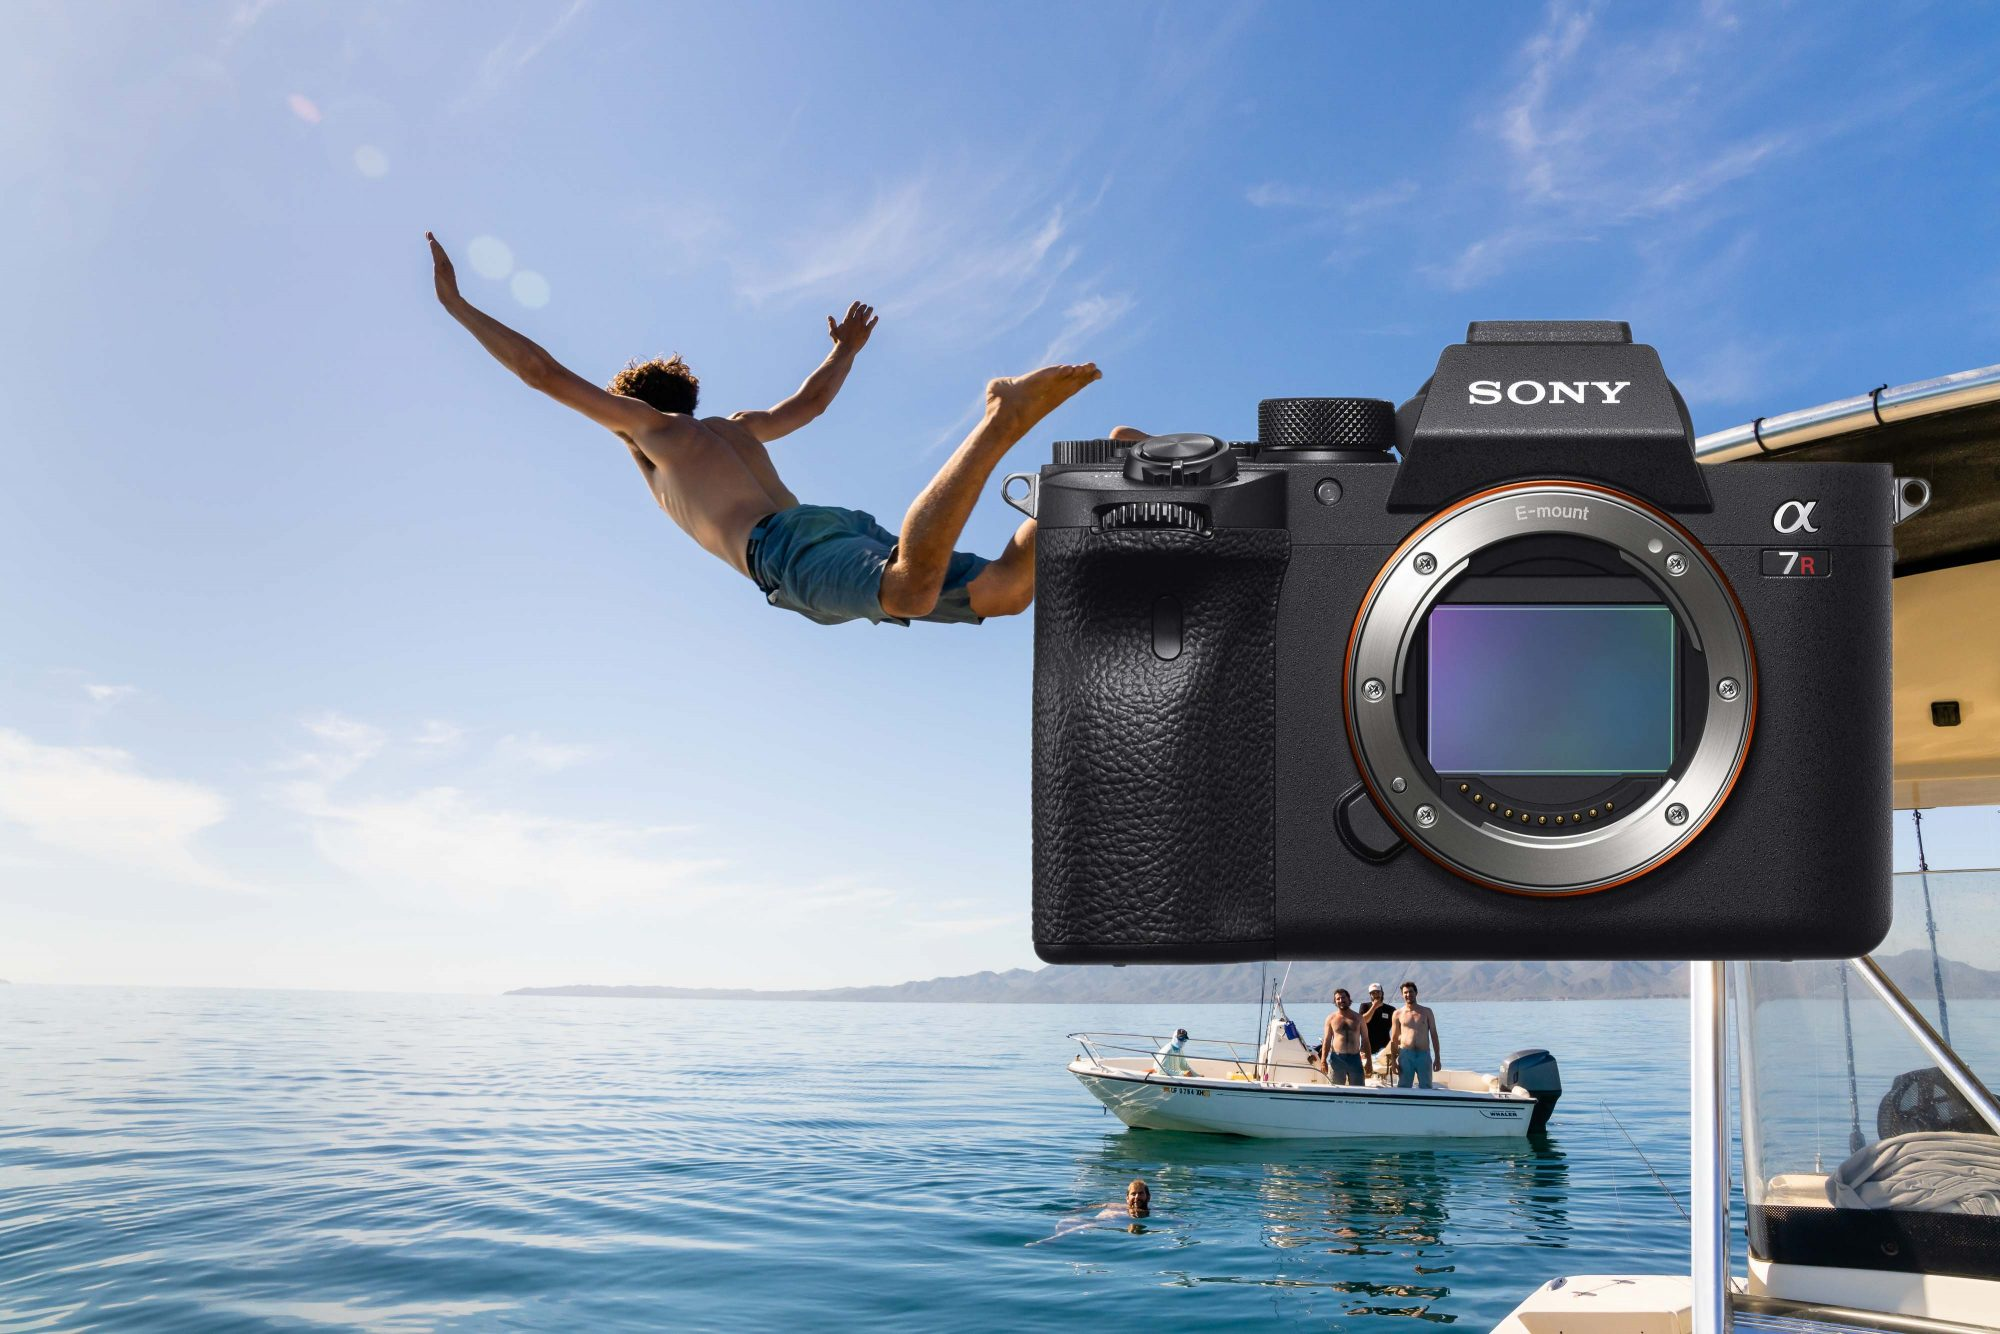 Sony a7R IV Headline Photo by Jay Goodrich